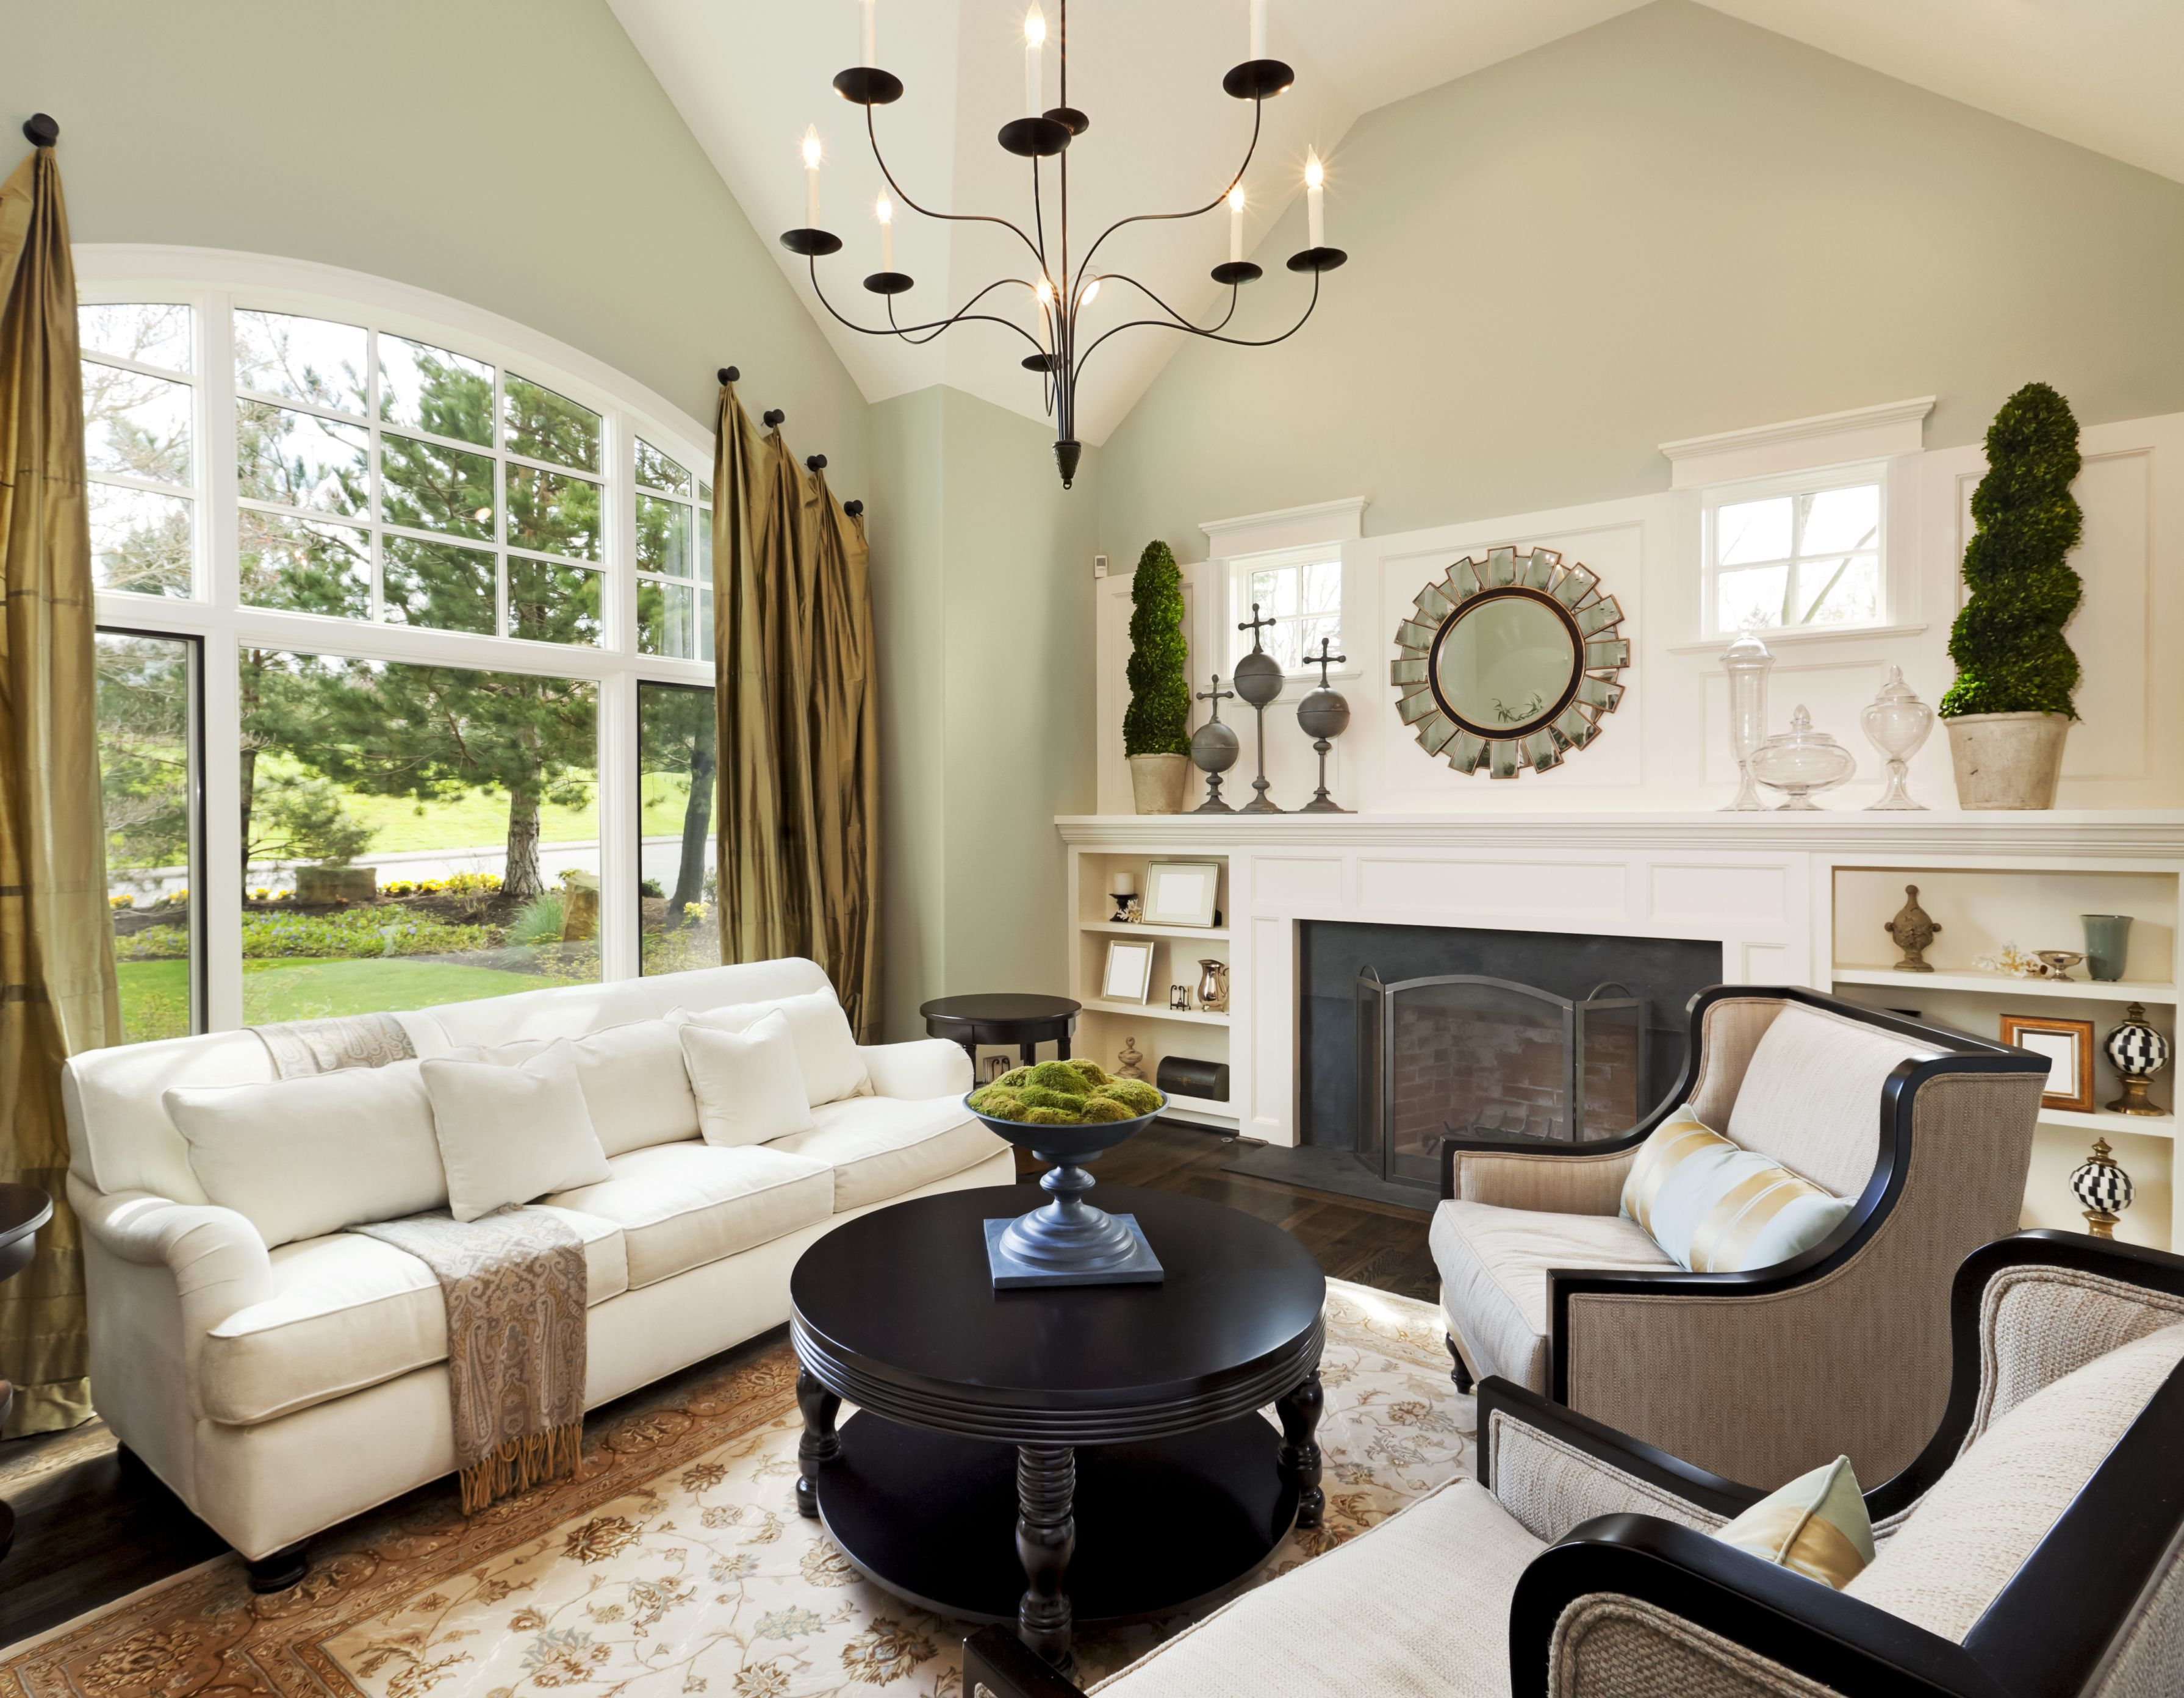 how to decorate your home room by room - Interior Design Living Room Ideas